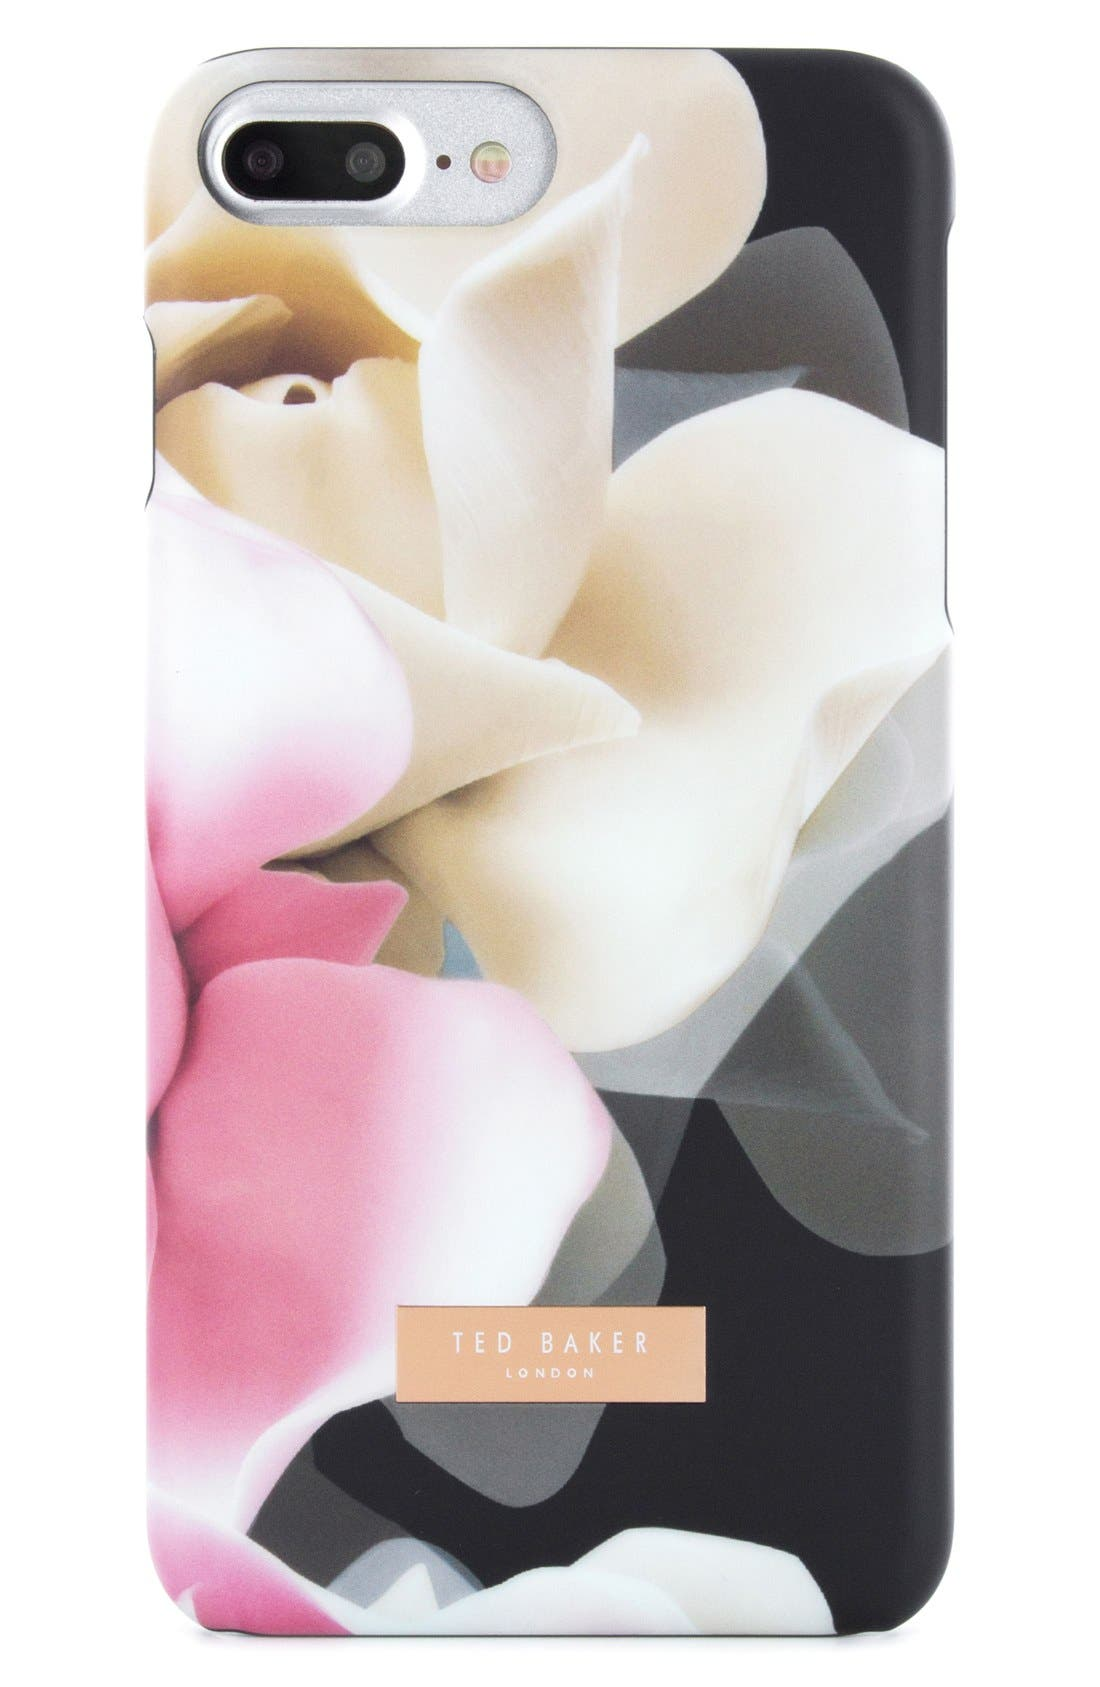 Main Image - Ted Baker London Annotei iPhone 6/6s/7/8 & 6/6s/7/8 Plus Case